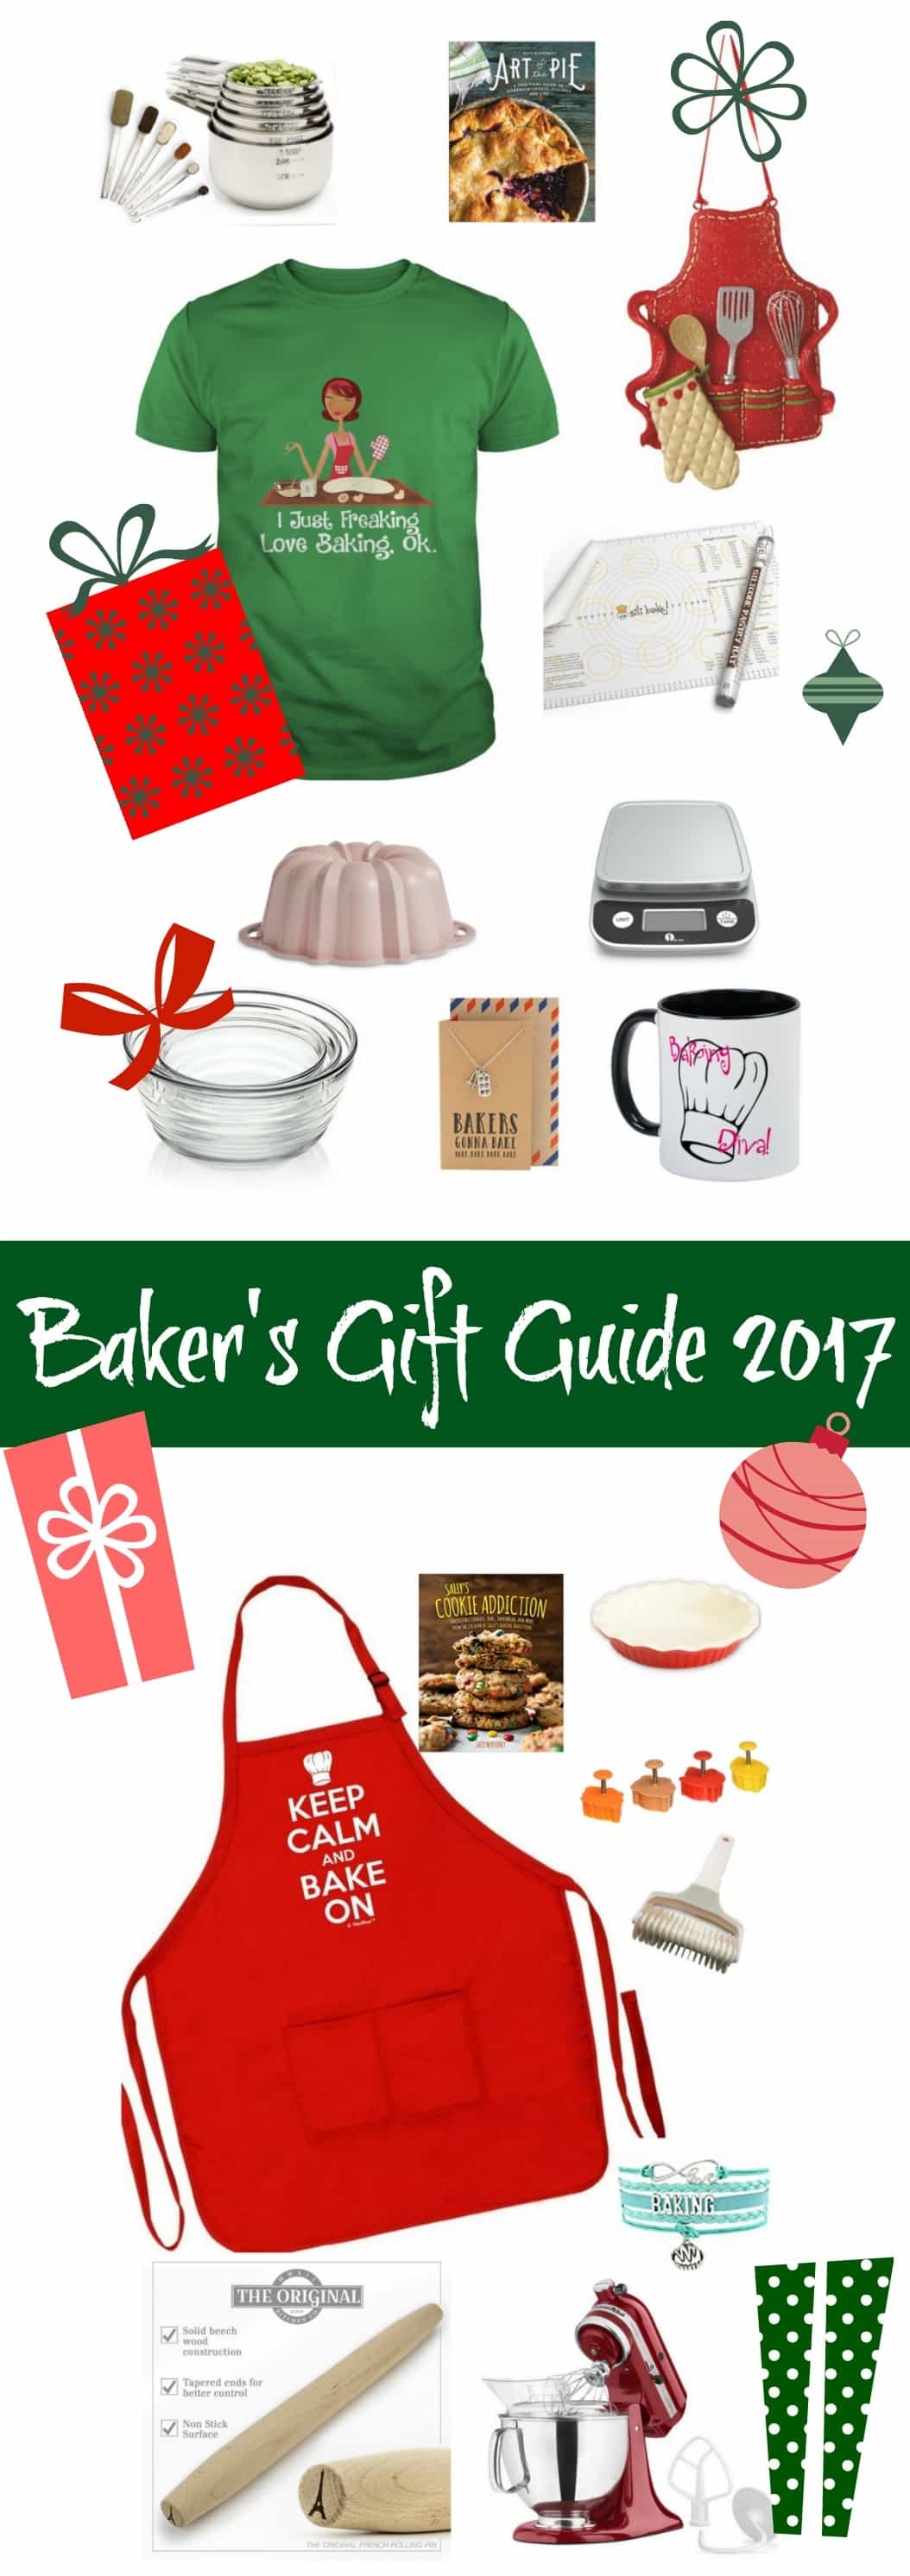 This Holiday Gift Guide has Great Gift Ideas for the Baker in your life. You know the one that bakes you all kinds of wonderful sweet things?